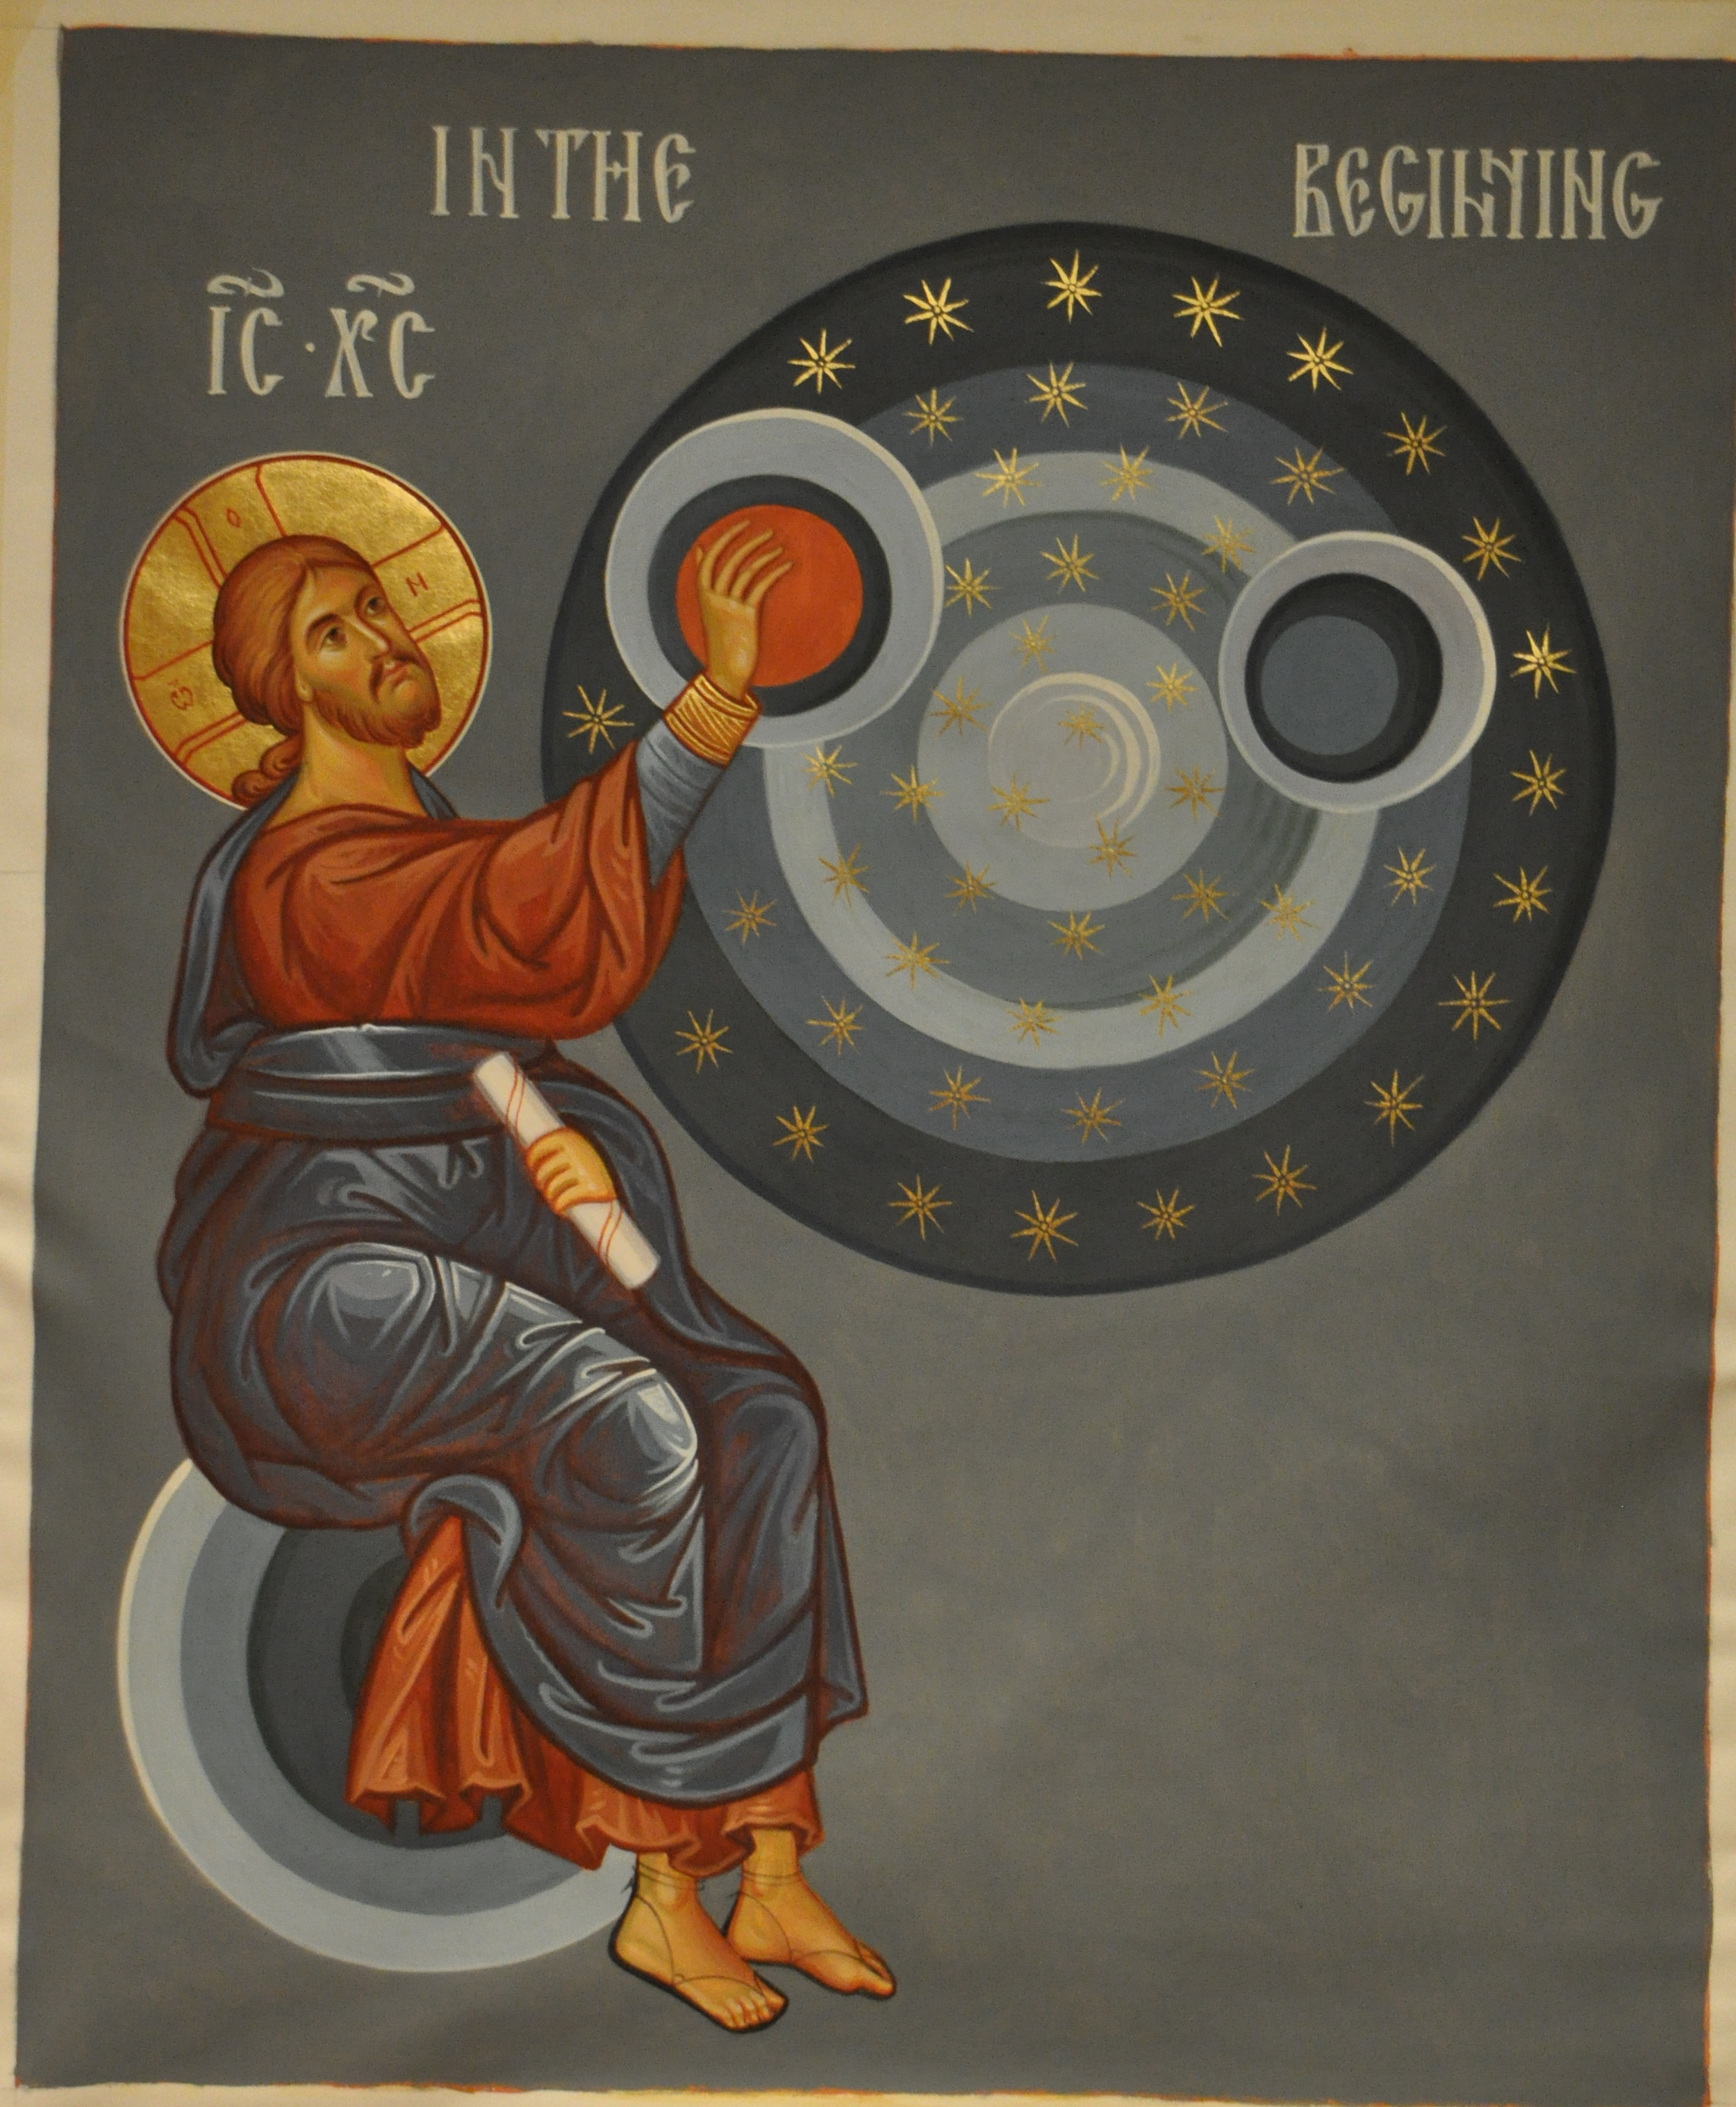 Icon: Creation of the Cosmos - Christ creating the cosmos Genesis 1 In the beginning - by Ted, 4 Mar 2011 (5504096566_f9119d89ea_o) (CC BY-SA 2.0 [https://creativecommons.org/licenses/by-sa/2.0/]), via Flickr